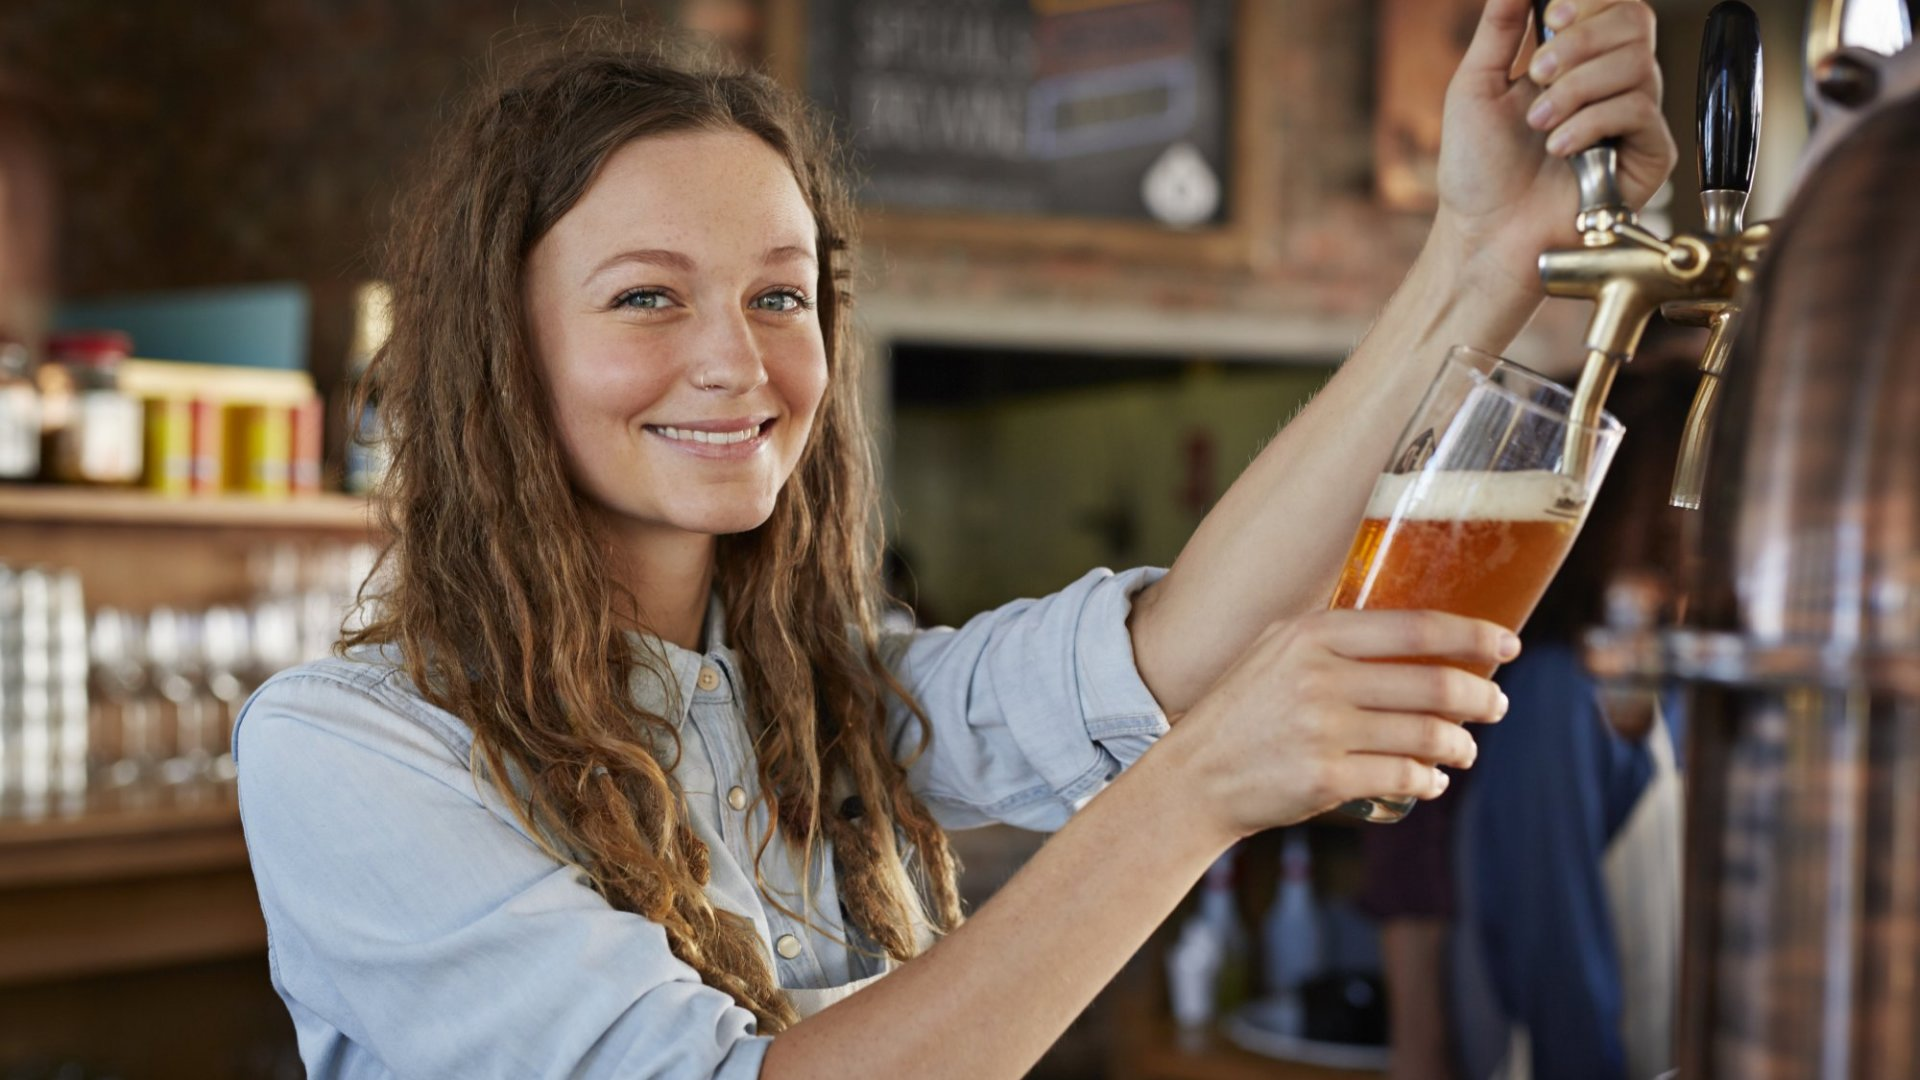 7 Simple Branding Lessons From the Craft Beer Industry